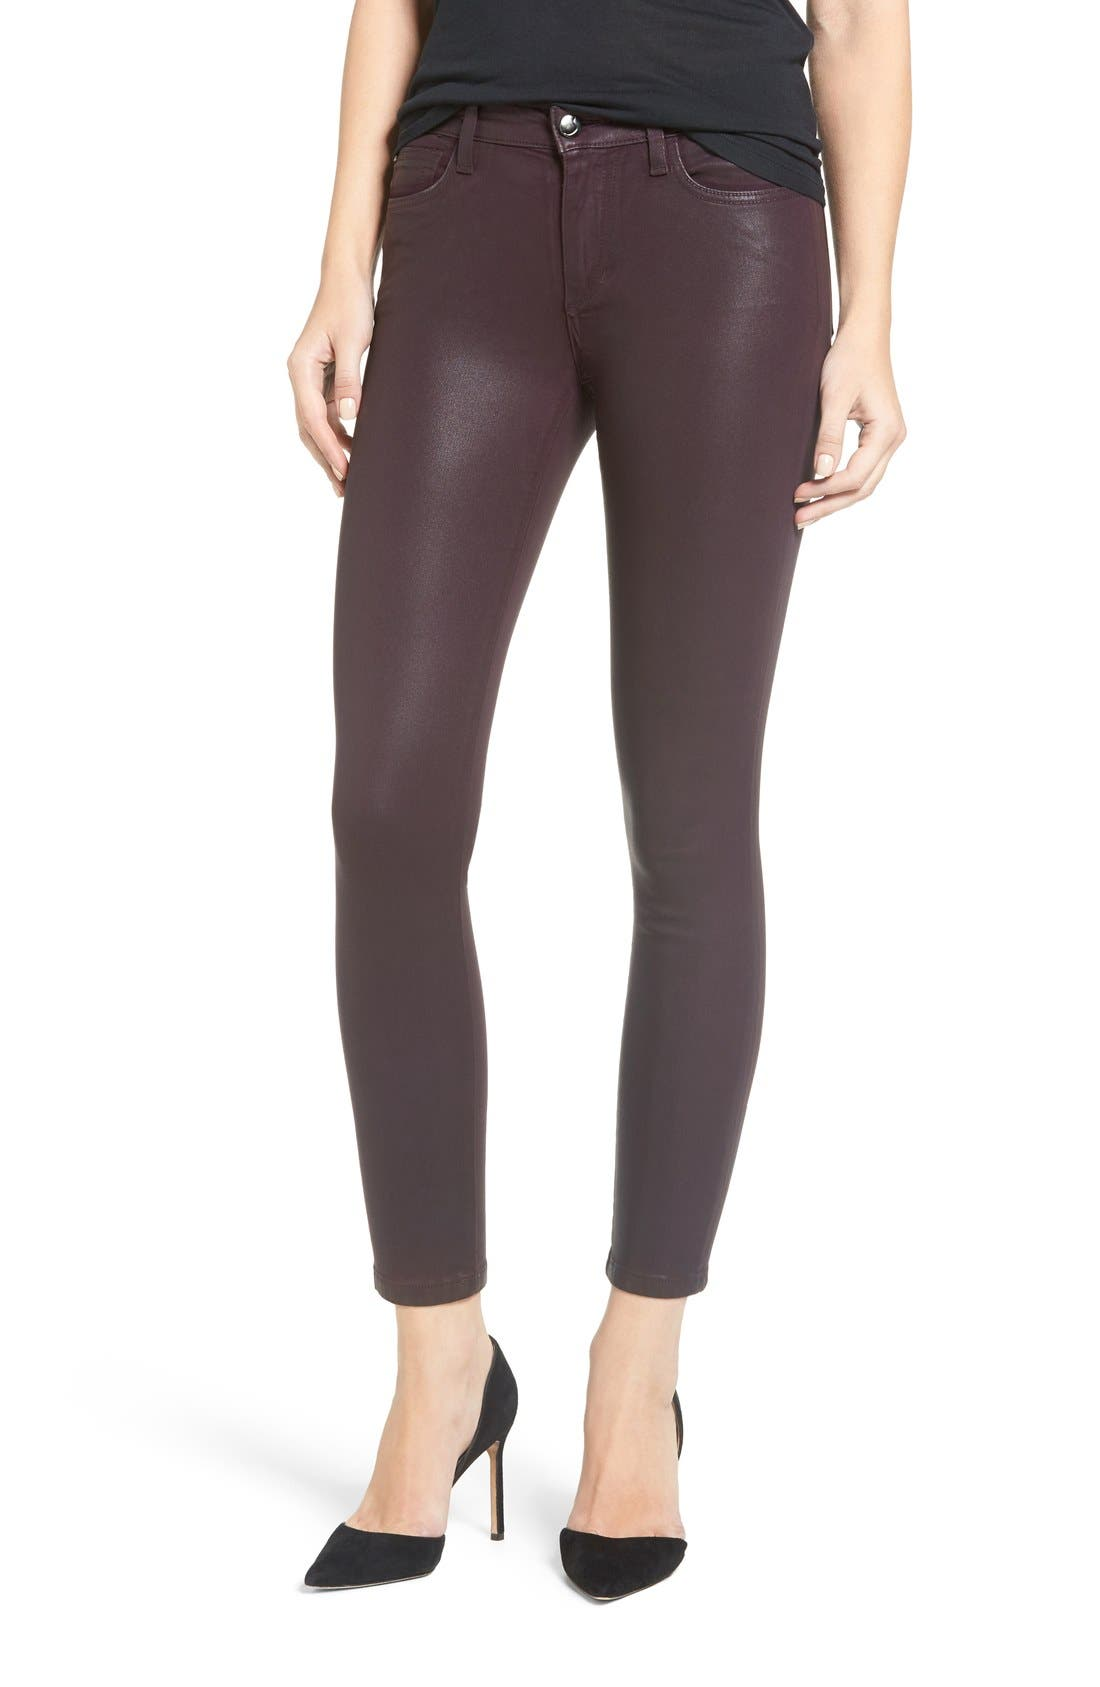 Jeans Icon Ankle Skinny Jeans,                             Main thumbnail 1, color,                             Deep Orchid Coated